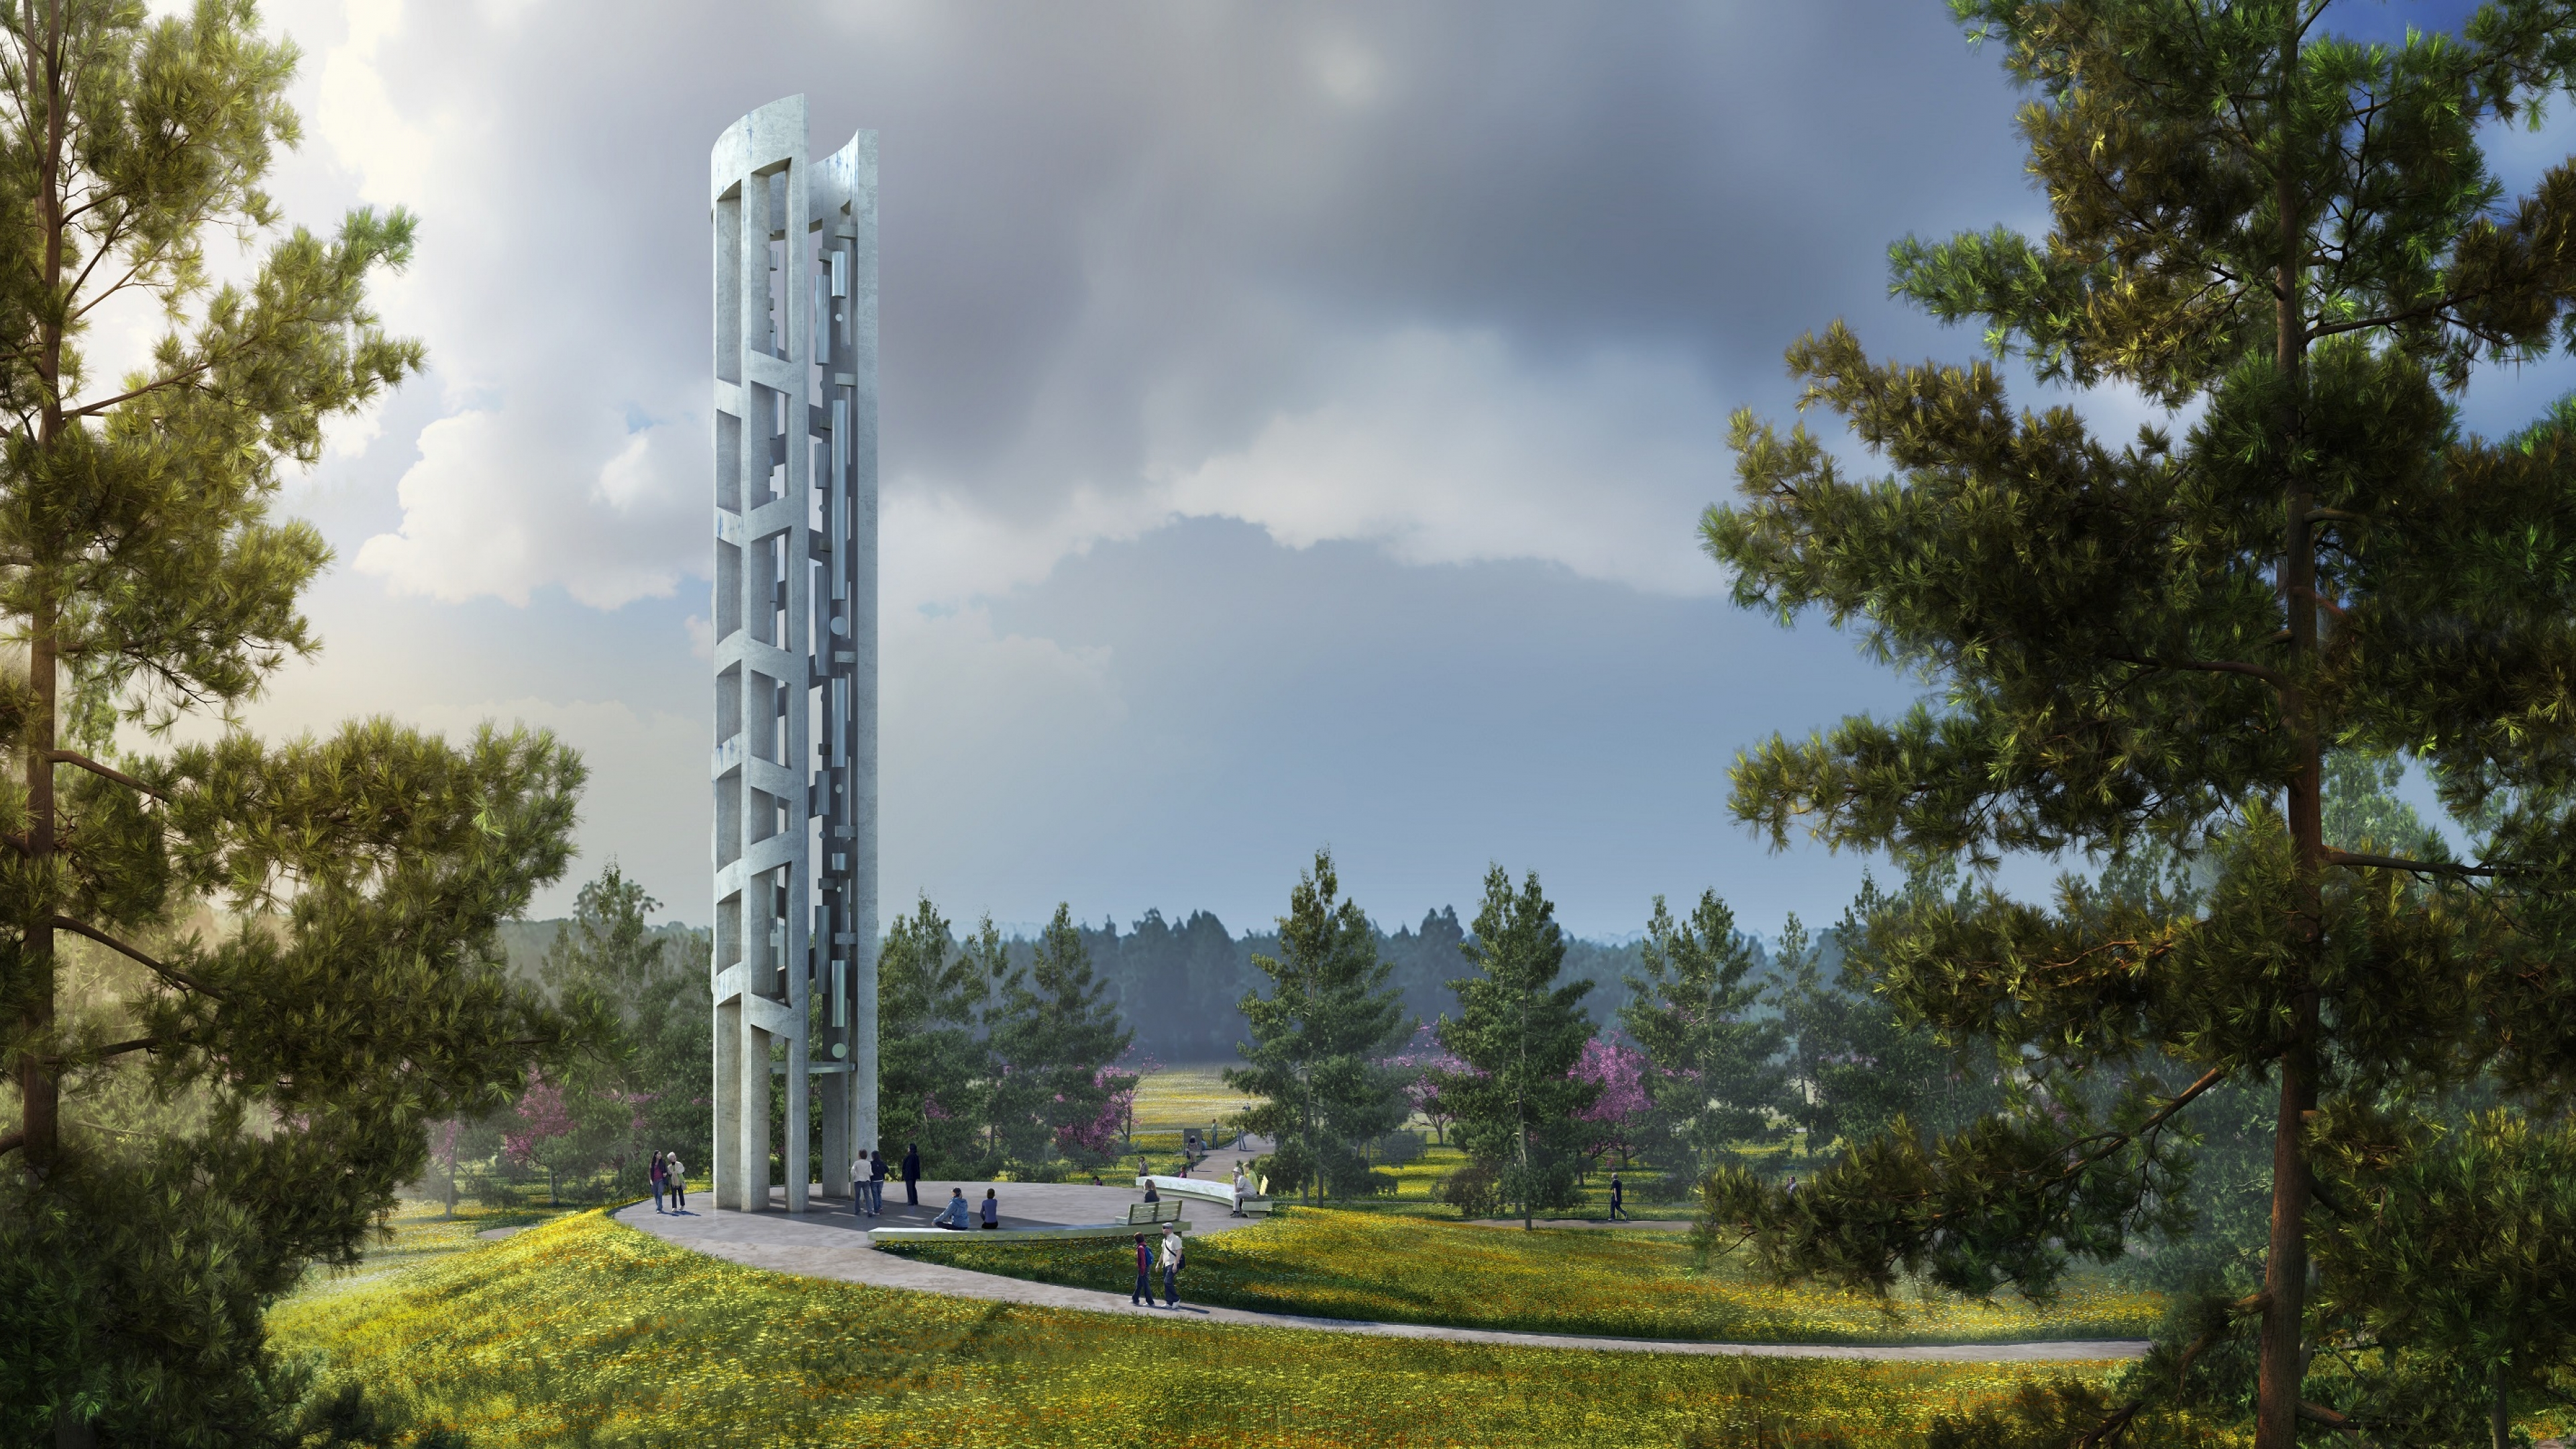 Tower of Voices rendering at Flight 93 National Memorial